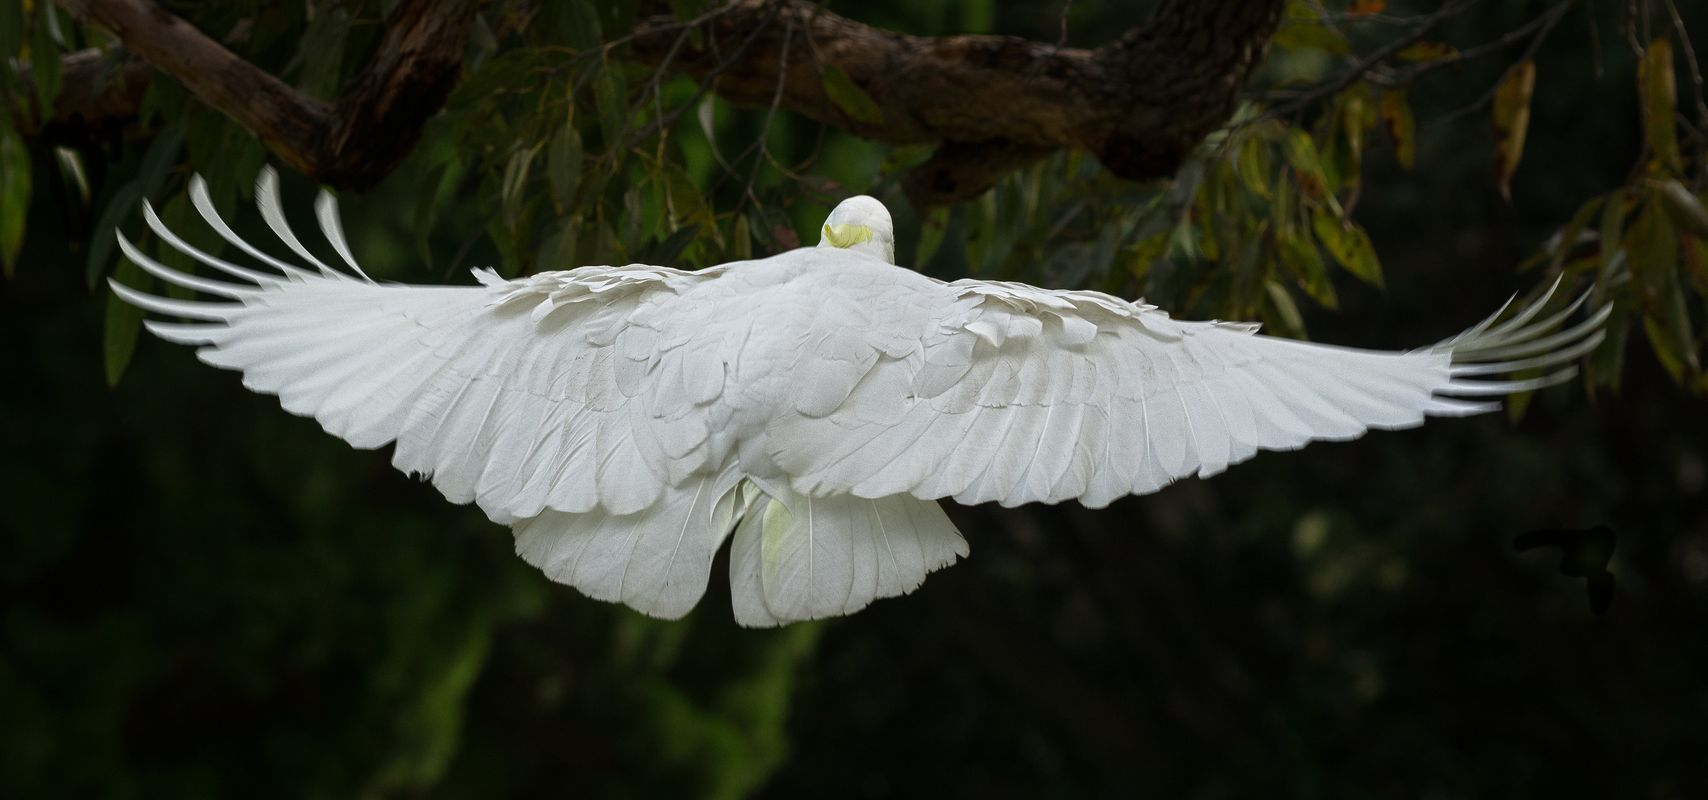 Sulphur-crested cockatoo about to land